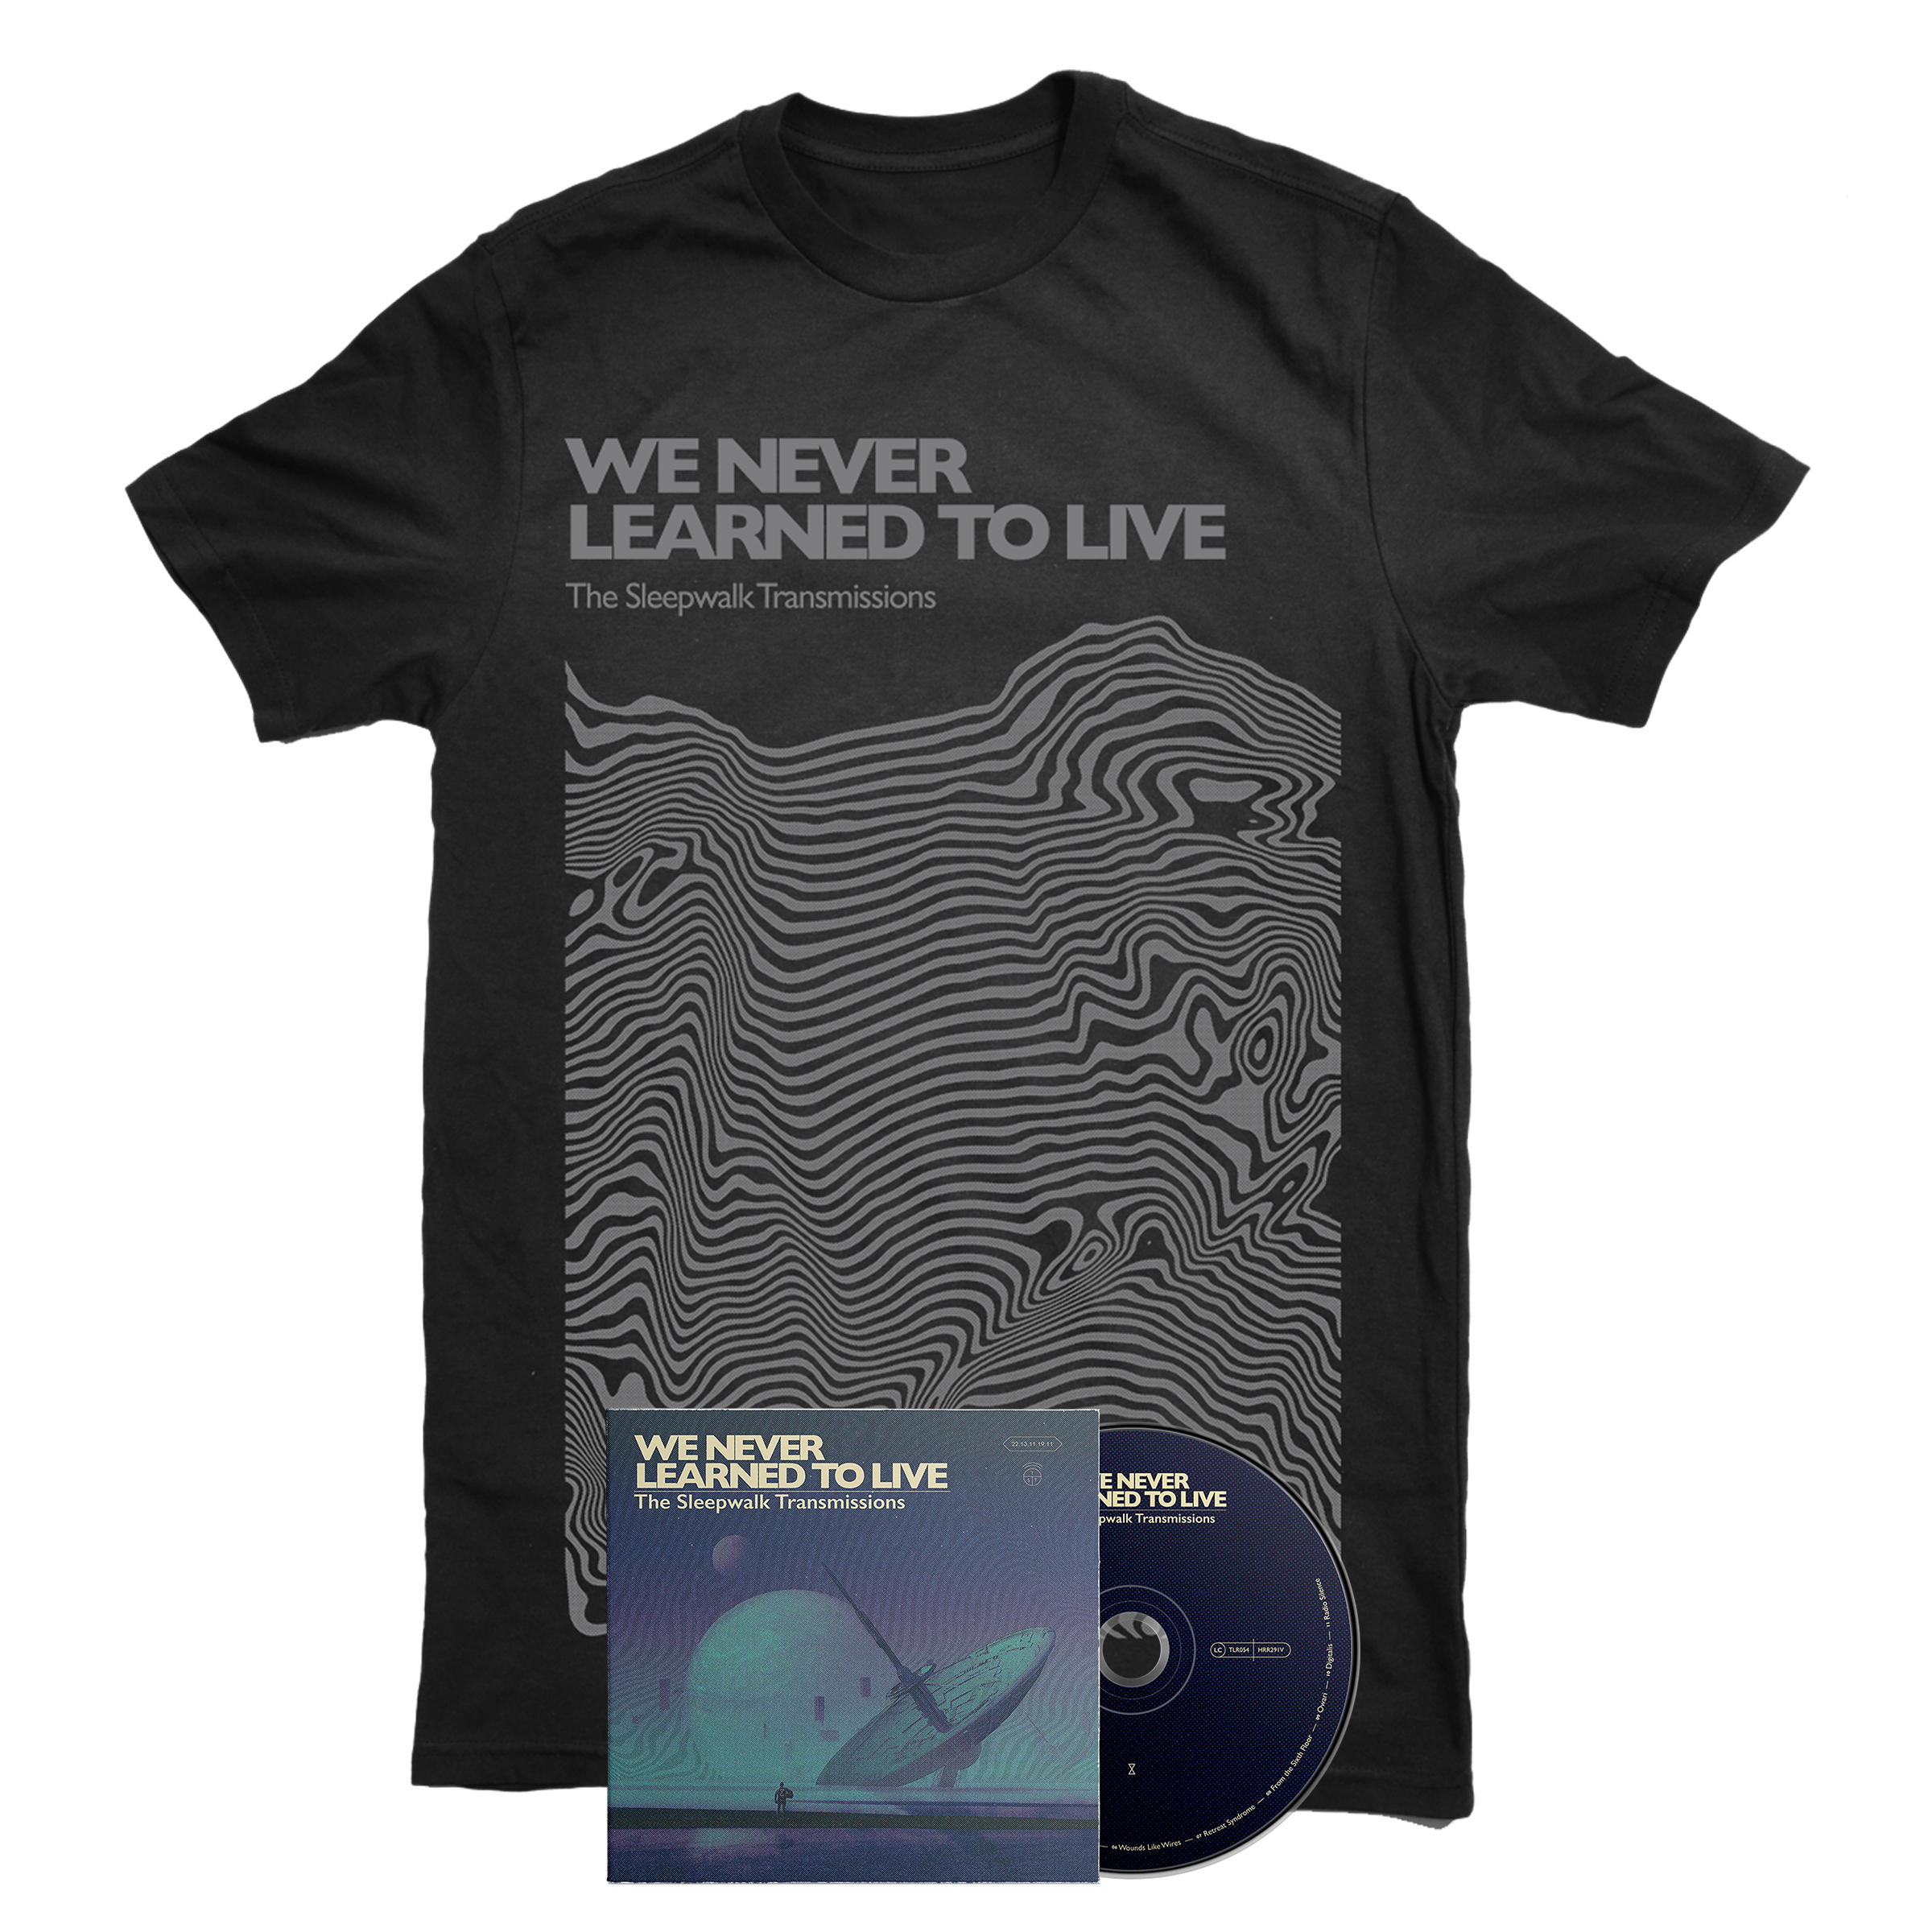 We Never Learned To Live - The Sleepwalk Transmissions CD + shirt